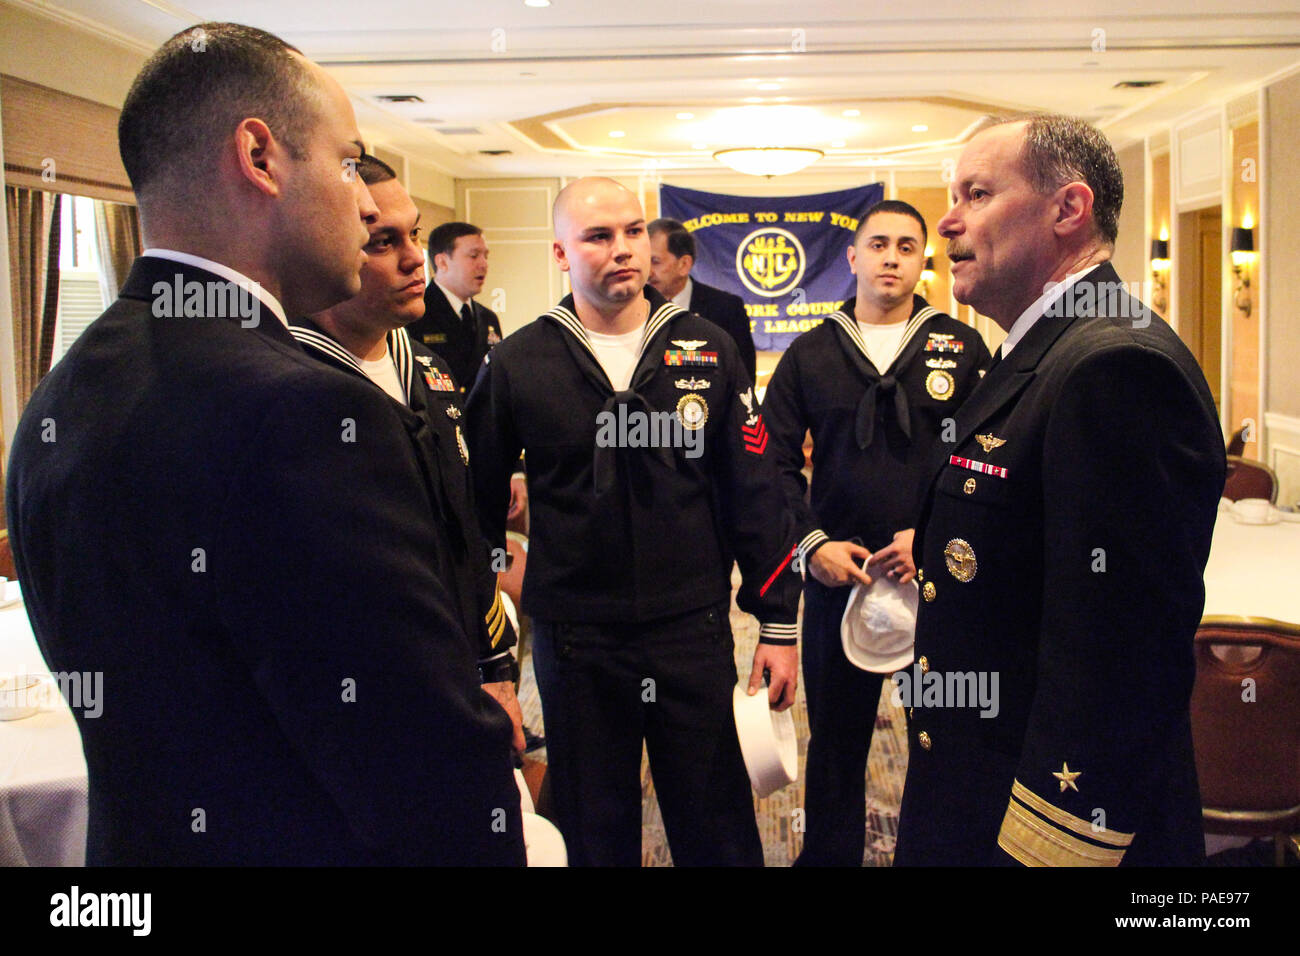 """Rear Adm. Michael C. Manazir, director of air warfare, right, speaks with Sailors assigned to Navy Recruiting District New York at the conclusion of his presentation to members and guests of the New York Council of the Navy League as part of their breakfast speaker series, """"Warfighting in the 21st Century,"""" at the Cornell Club in New York City, March 23. Manazir's presentation and follow on discussion focused on the state of naval aviation, the service's efforts to integrate networks and capabilities across warfighting platforms and how the Navy will meet future challenges. (U.S. Navy photo by Stock Photo"""